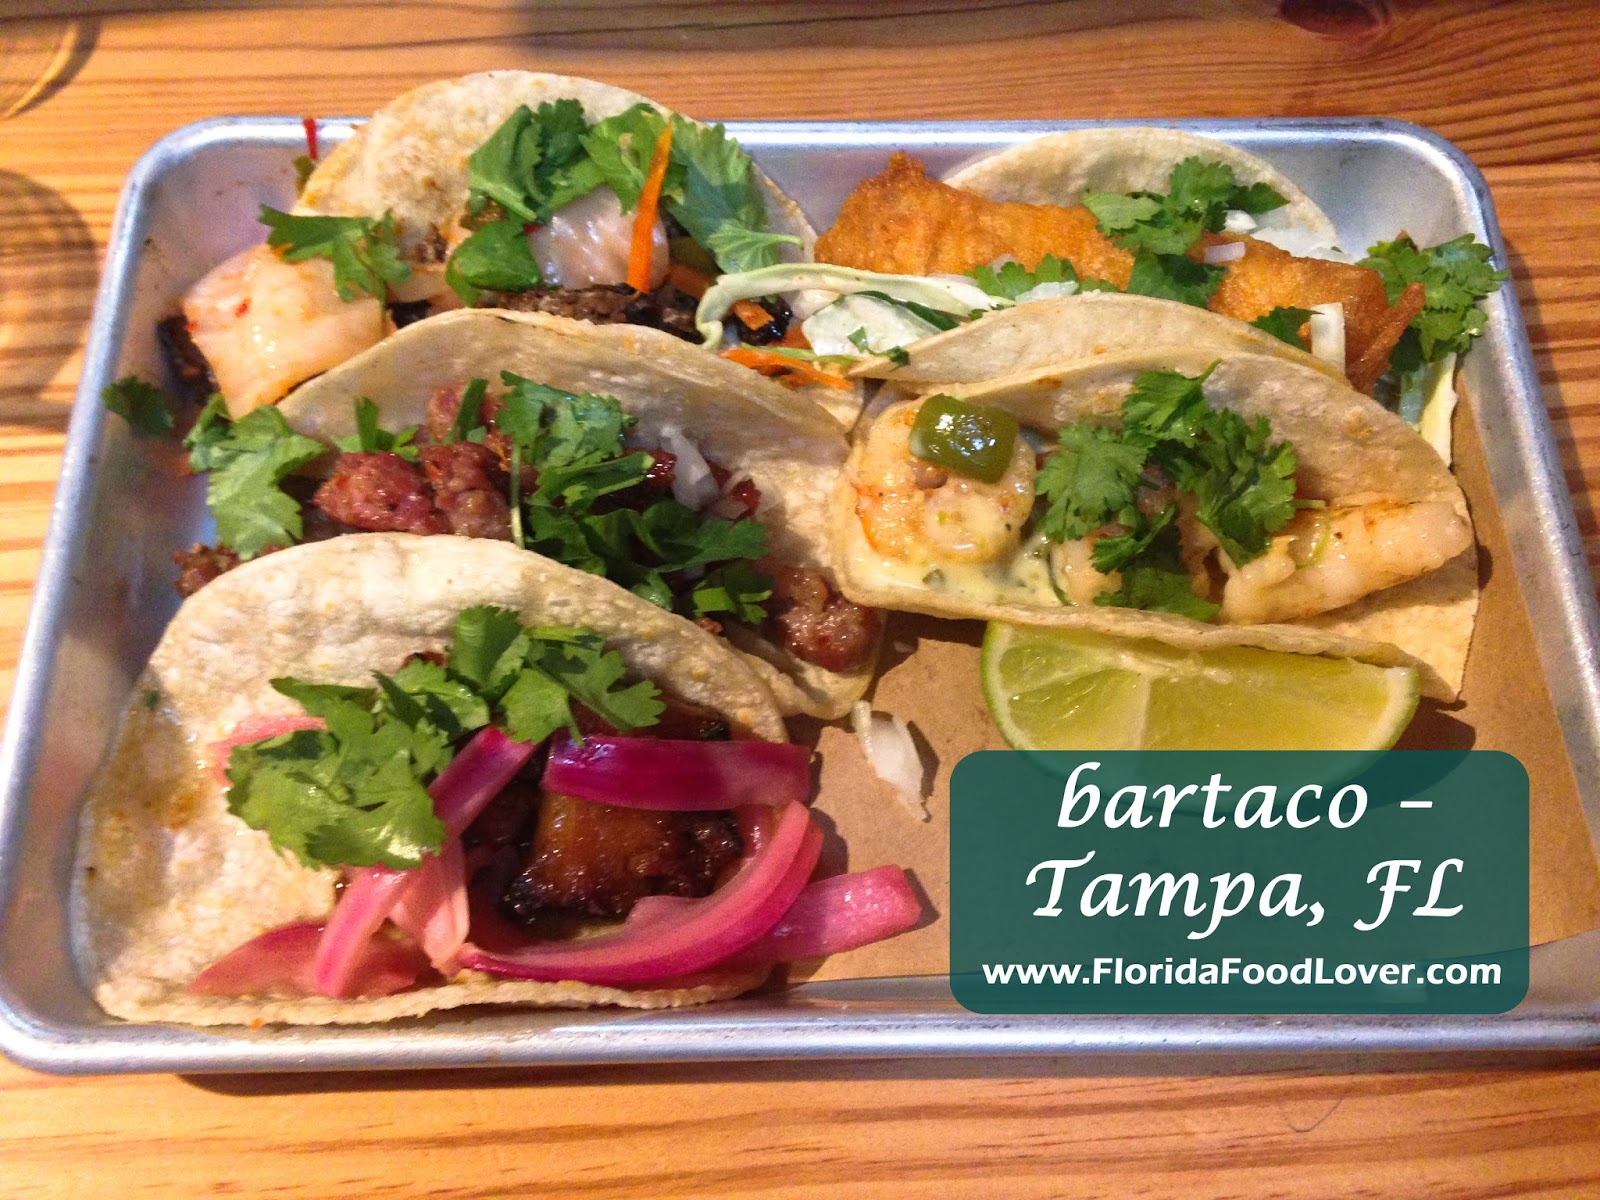 Florida Food Lover: bartaco – Tampa, FL